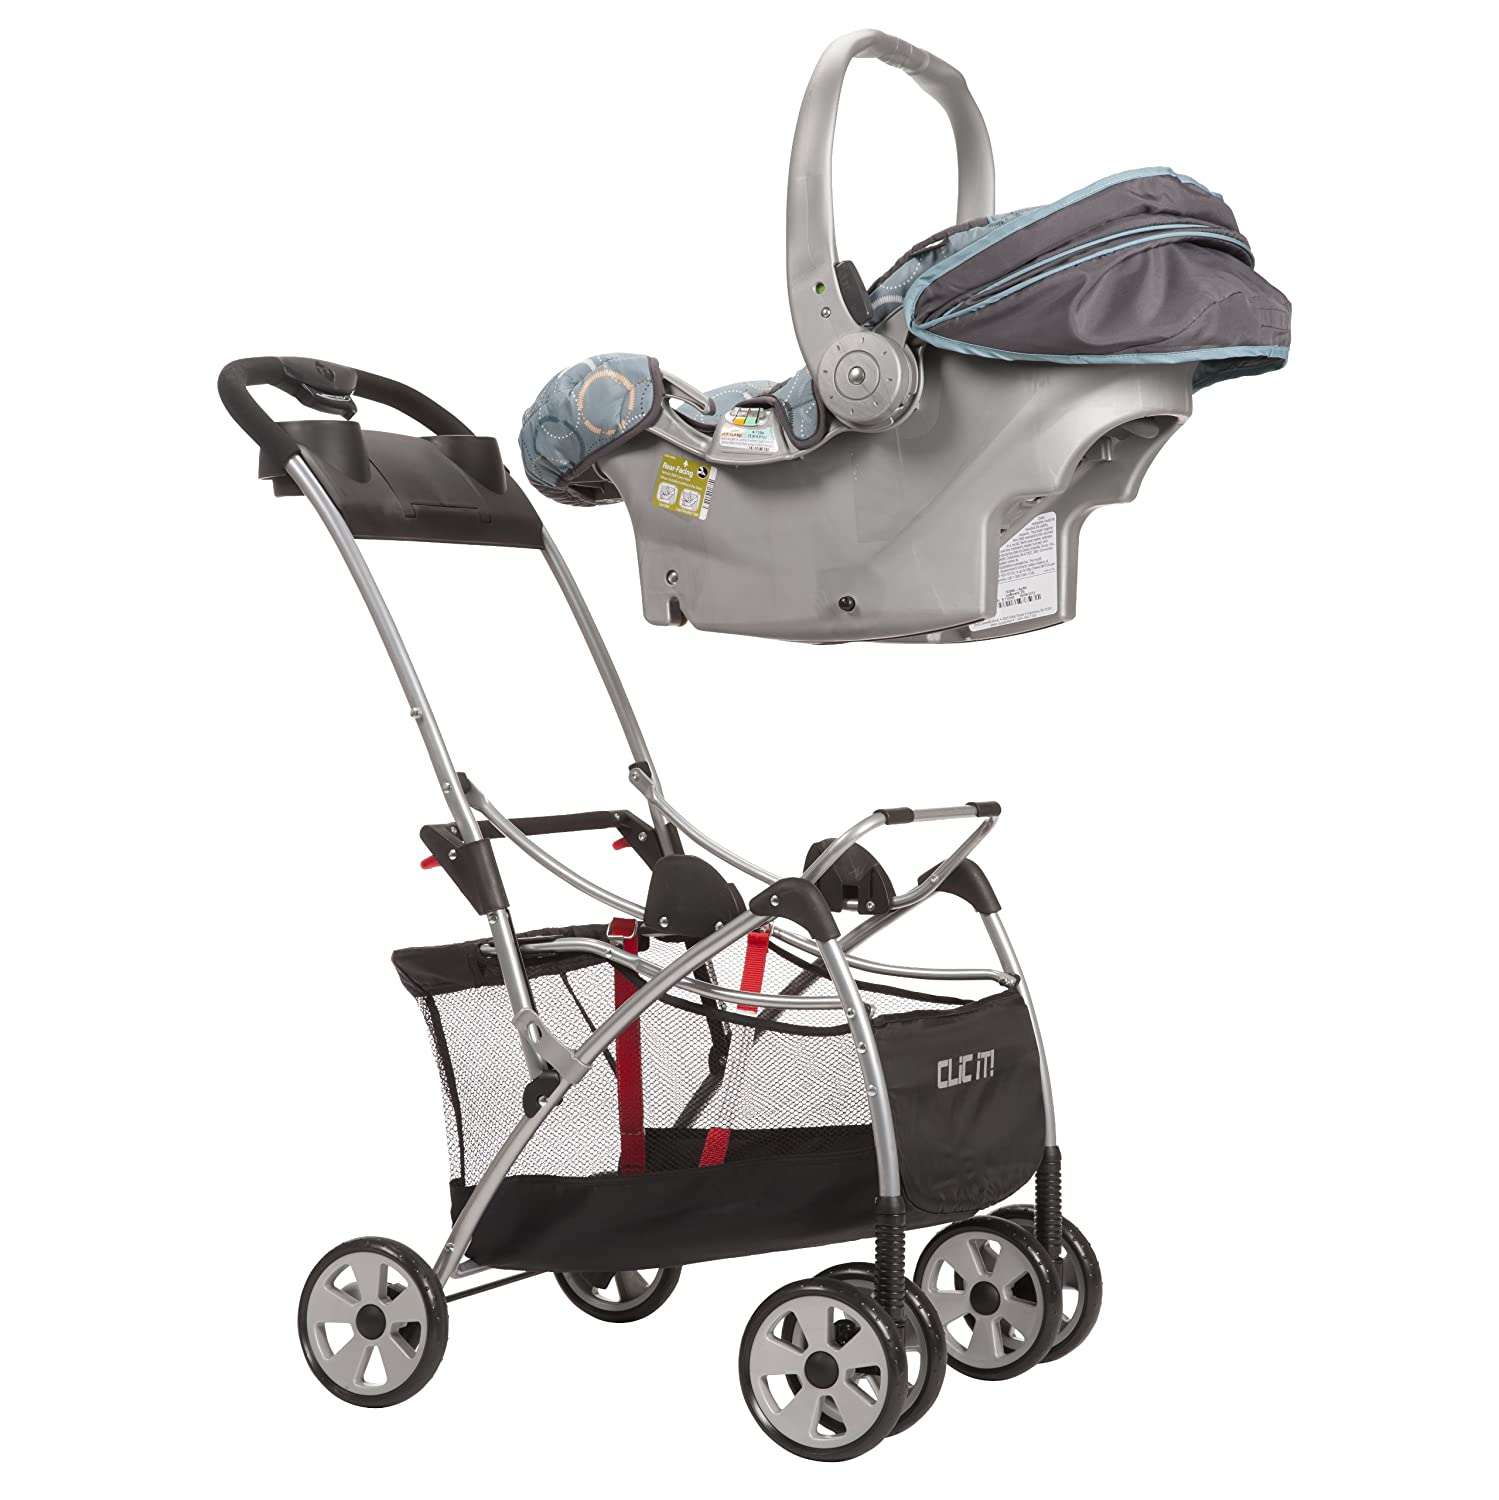 Amazon.com : Safety 1st Clic It Infant Seat Carrier, Black/Silver ...